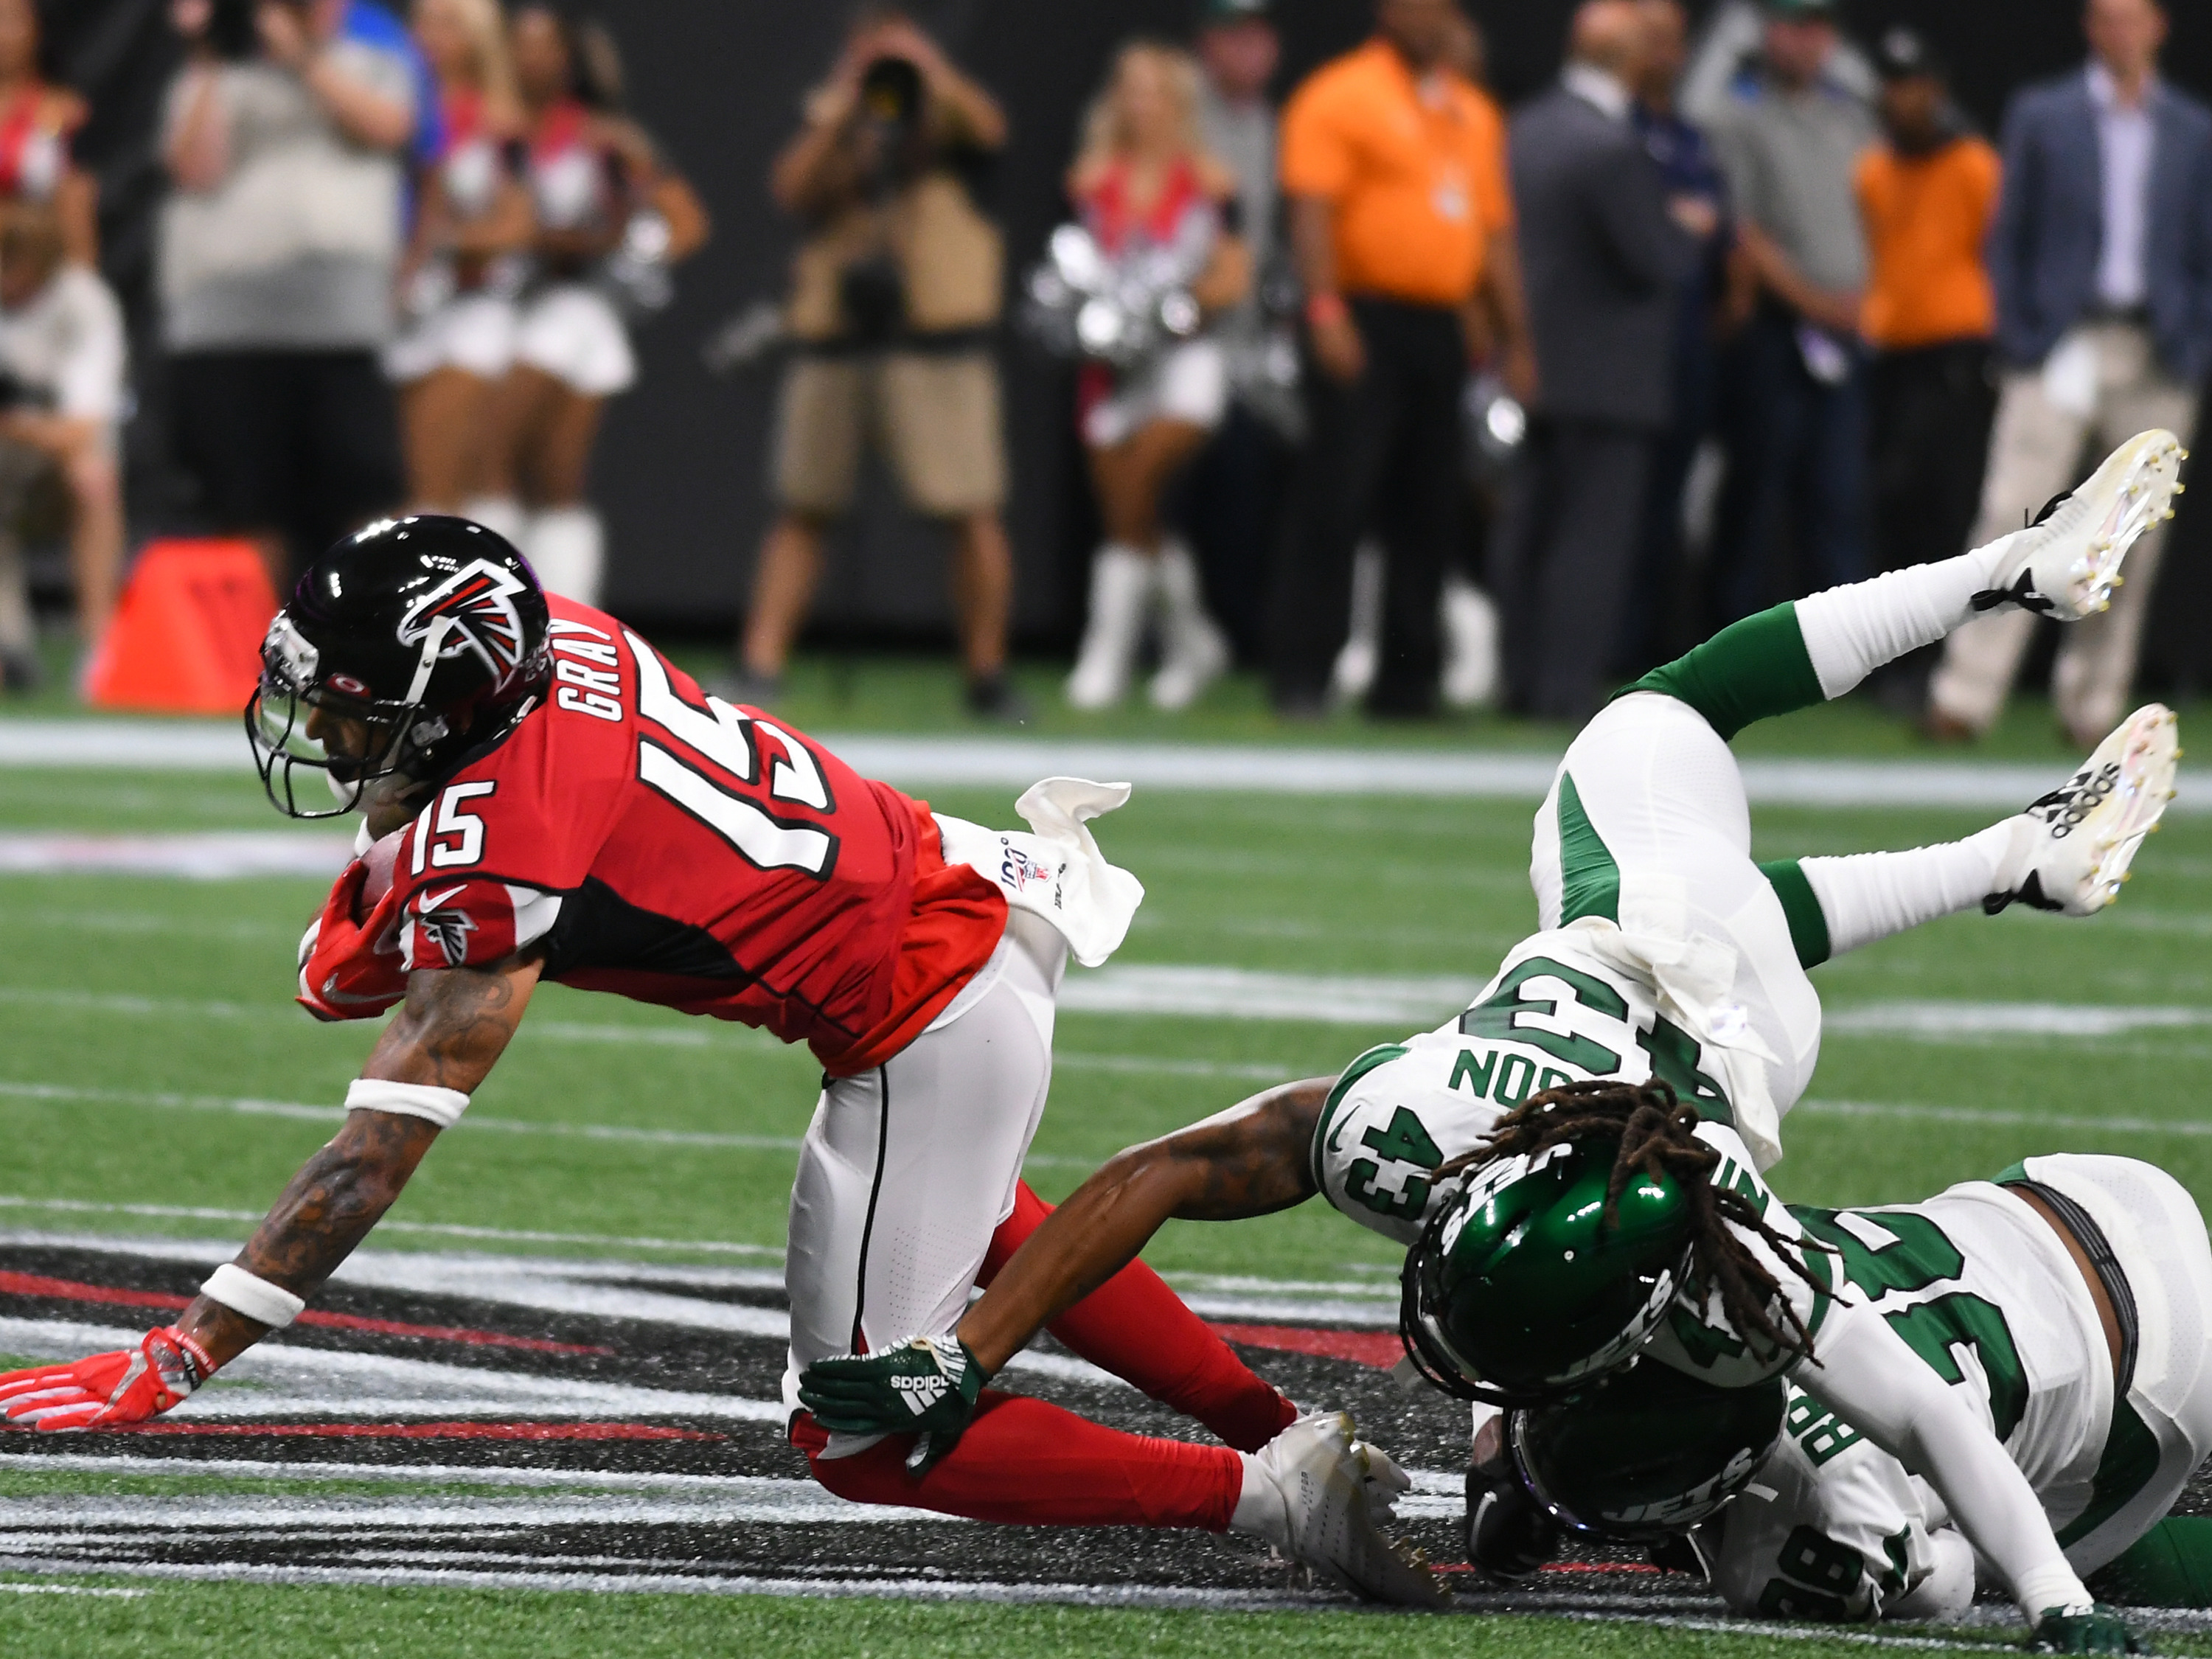 NFL: AUG 15 Preseason - Jets at Falcons